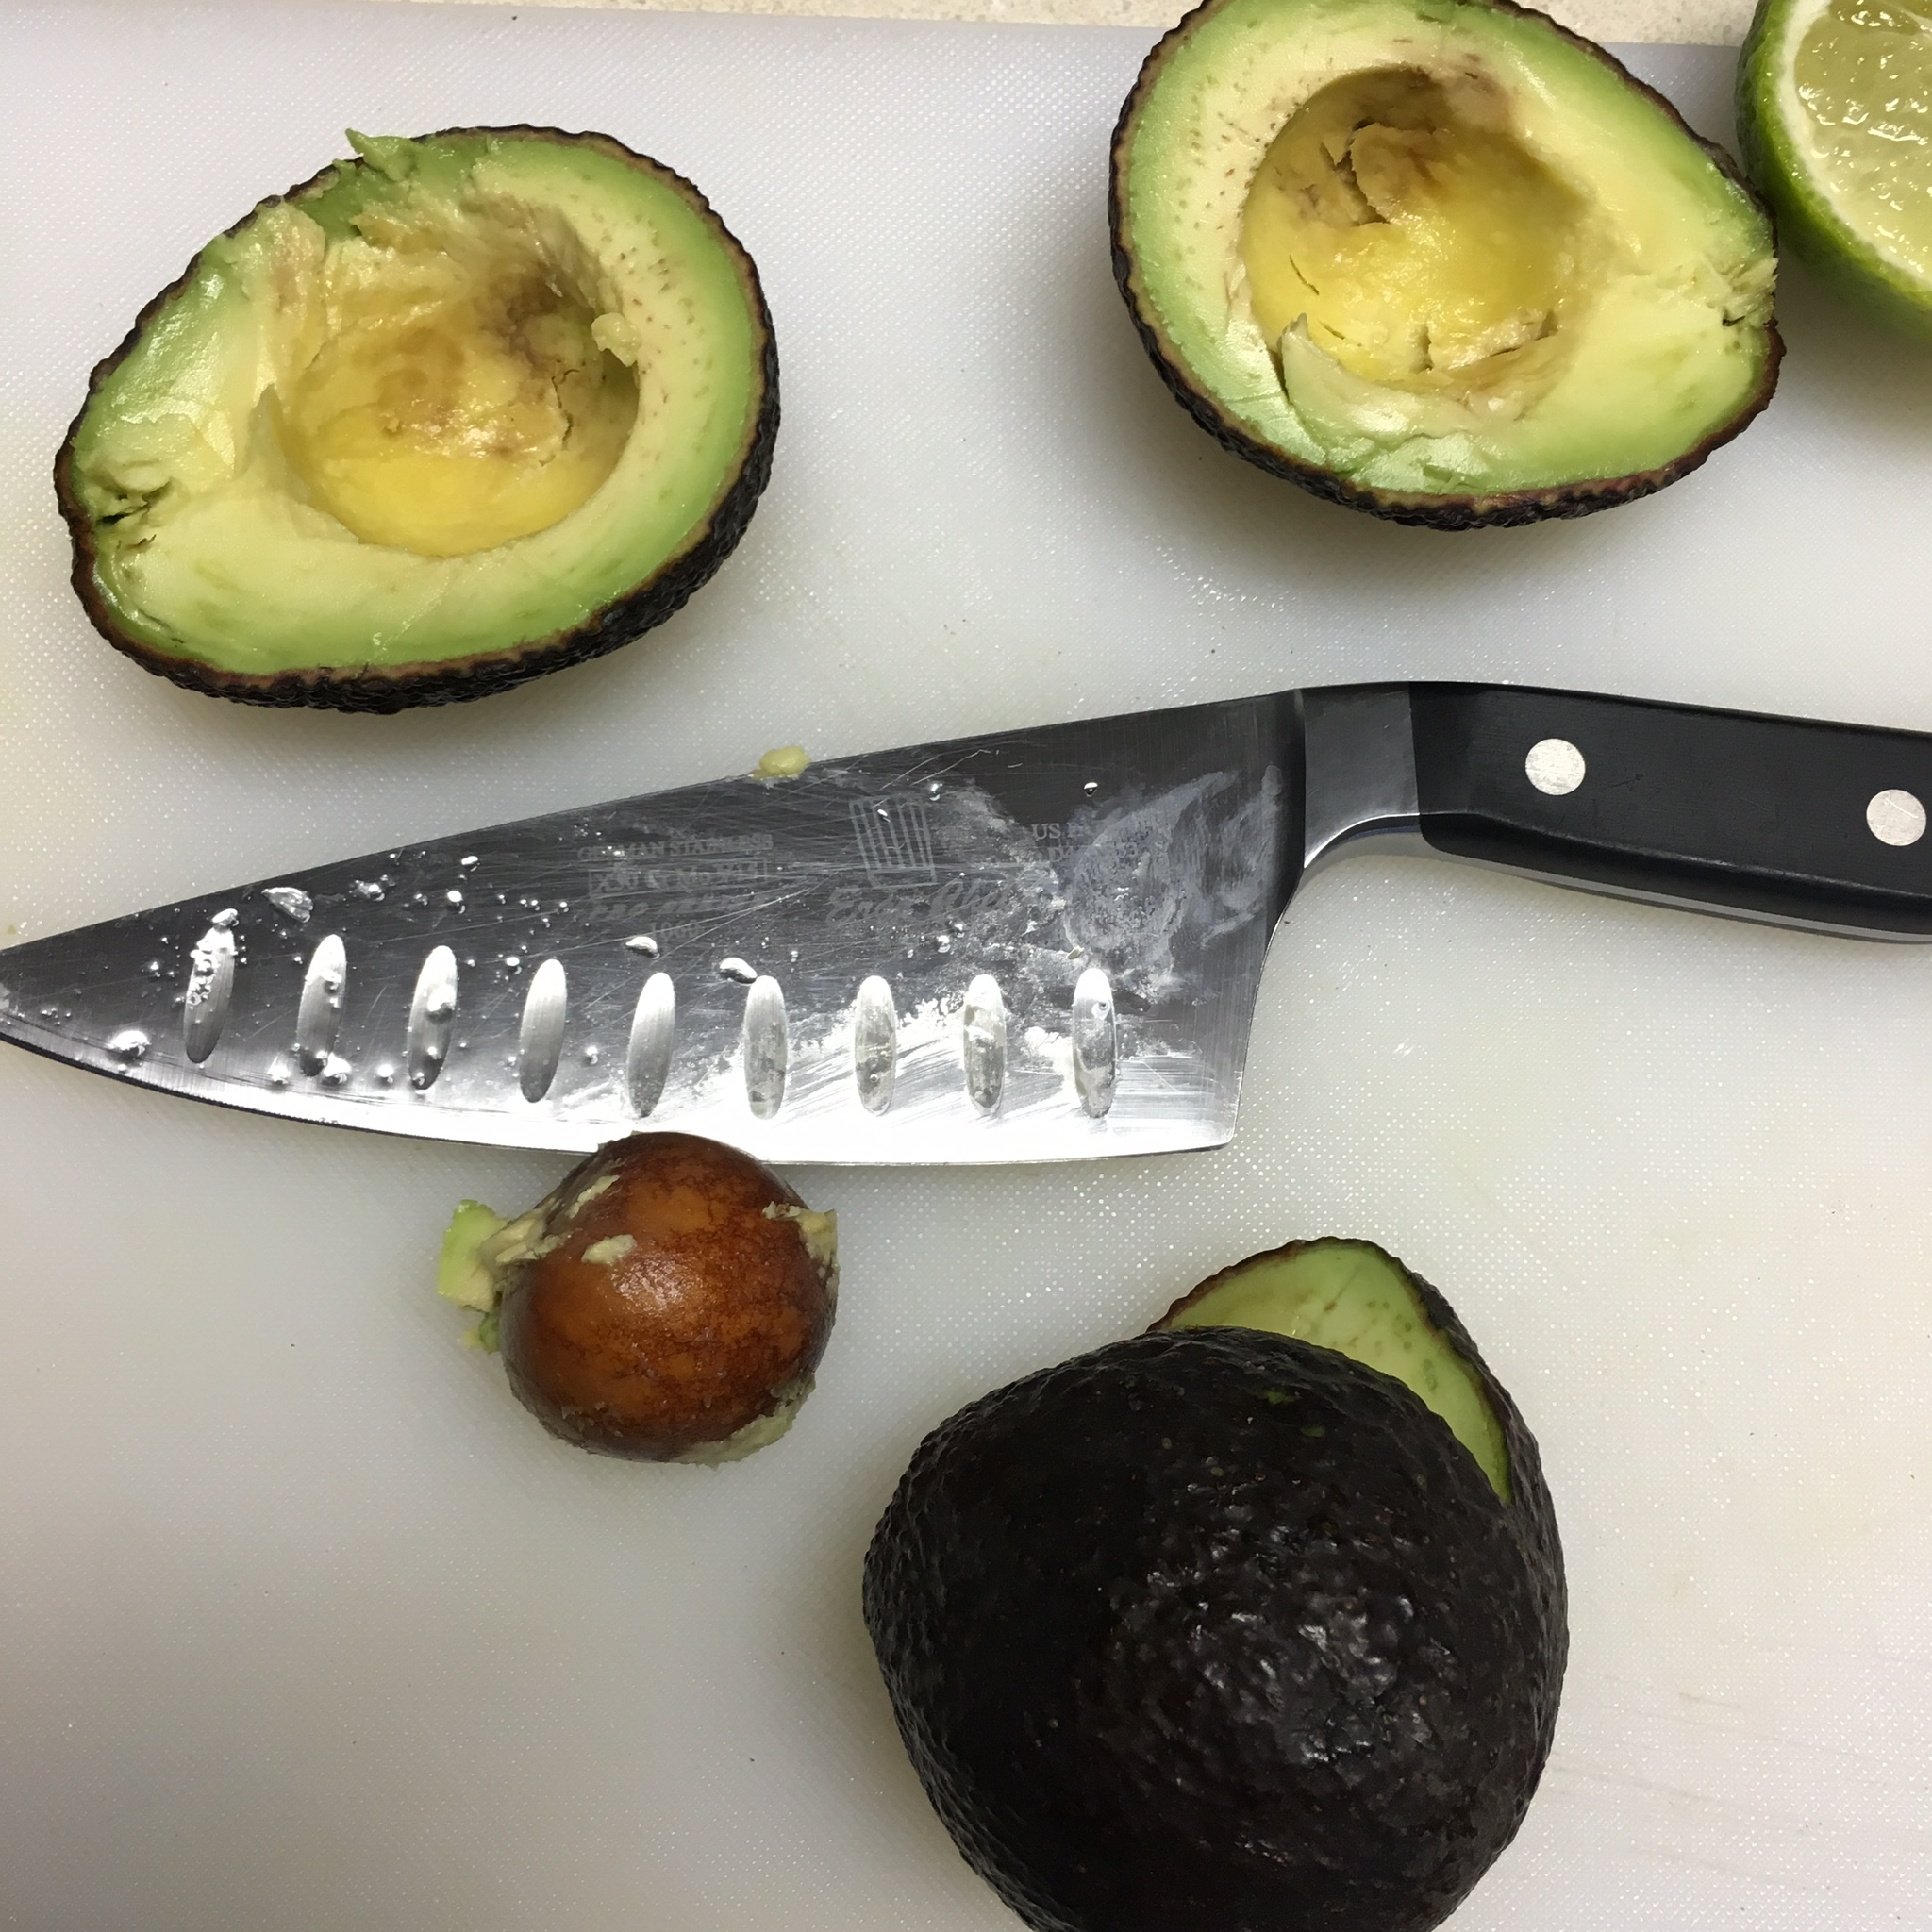 How to Make Fresh Guacamole and Ripen An Avocado